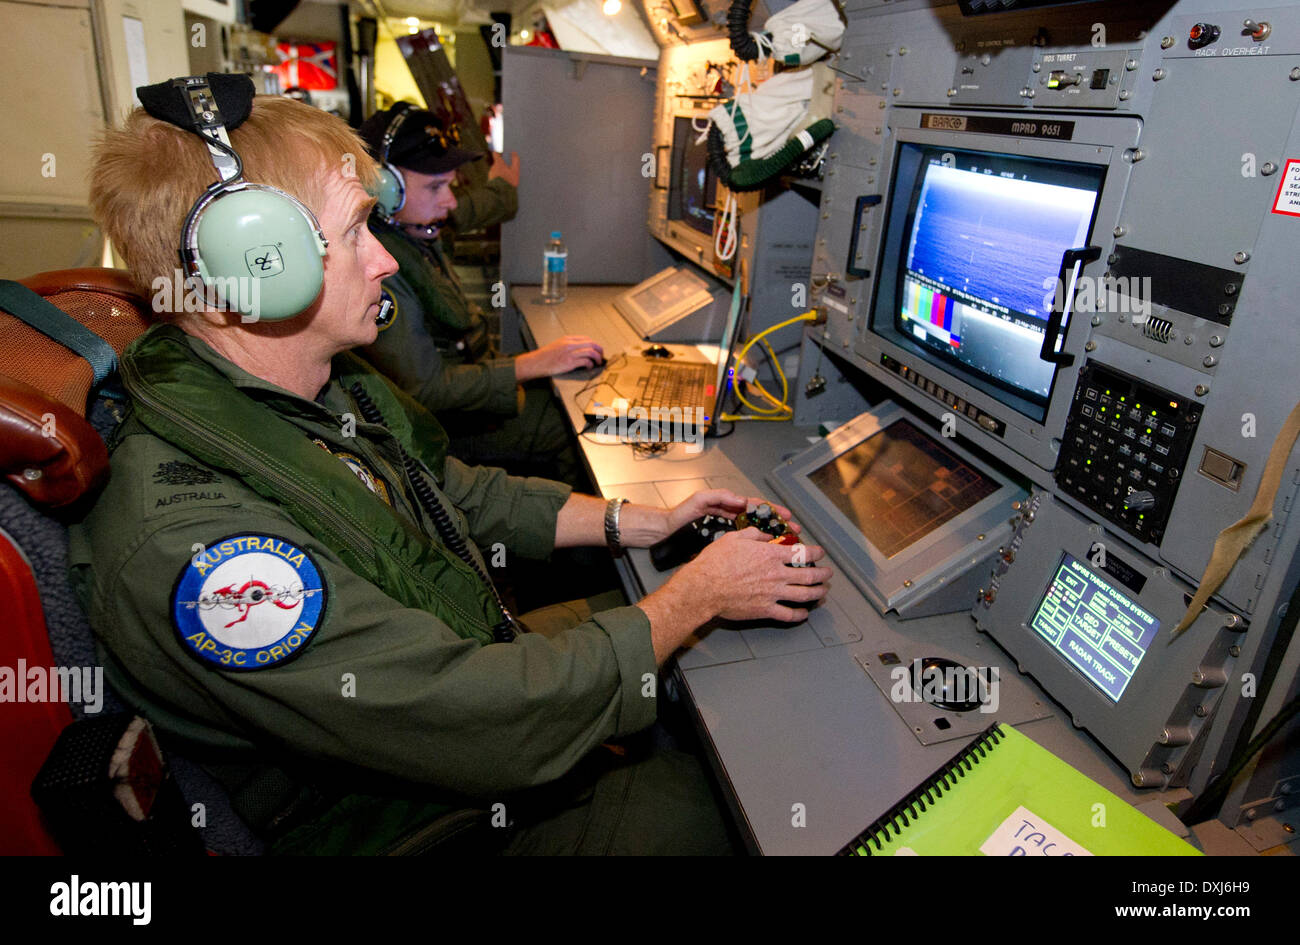 Canberra. 24th Mar, 2014. Royal Australian Air Force Warrant Officer Adam Tucker operates the electro optical camera onboard an AP-3C Orion over the south Indian Ocean as part of the Australian Maritime Safety Authoirty-led search for Malaysia Airlines flight MH370 on March 24, 2014. © Australian Department of Defense/Xinhua/Alamy Live News - Stock Image